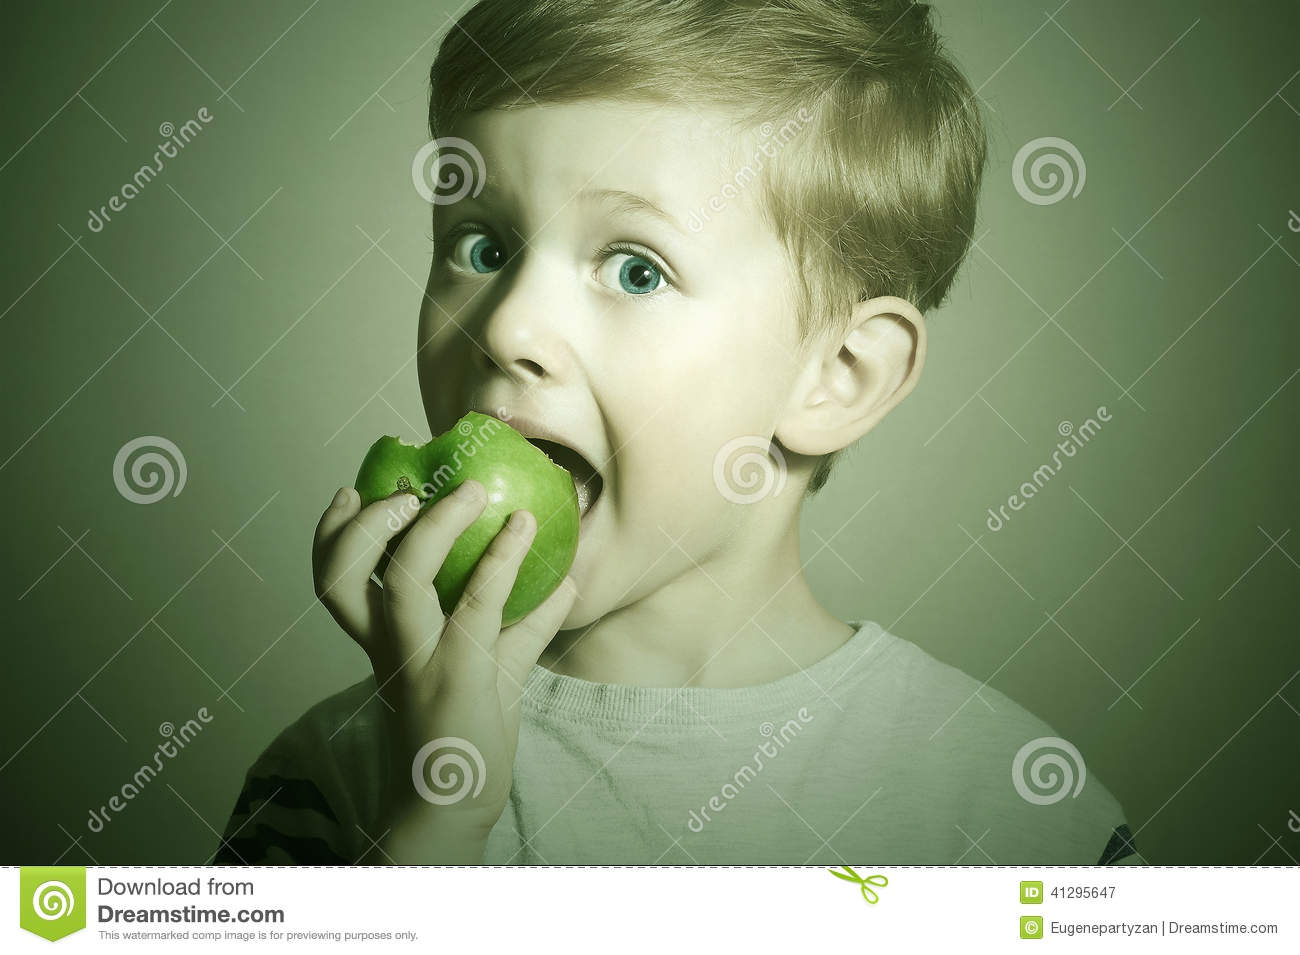 Vitamin.Child eating apple.Little Funny Boy with green apple. Health food. Fruits